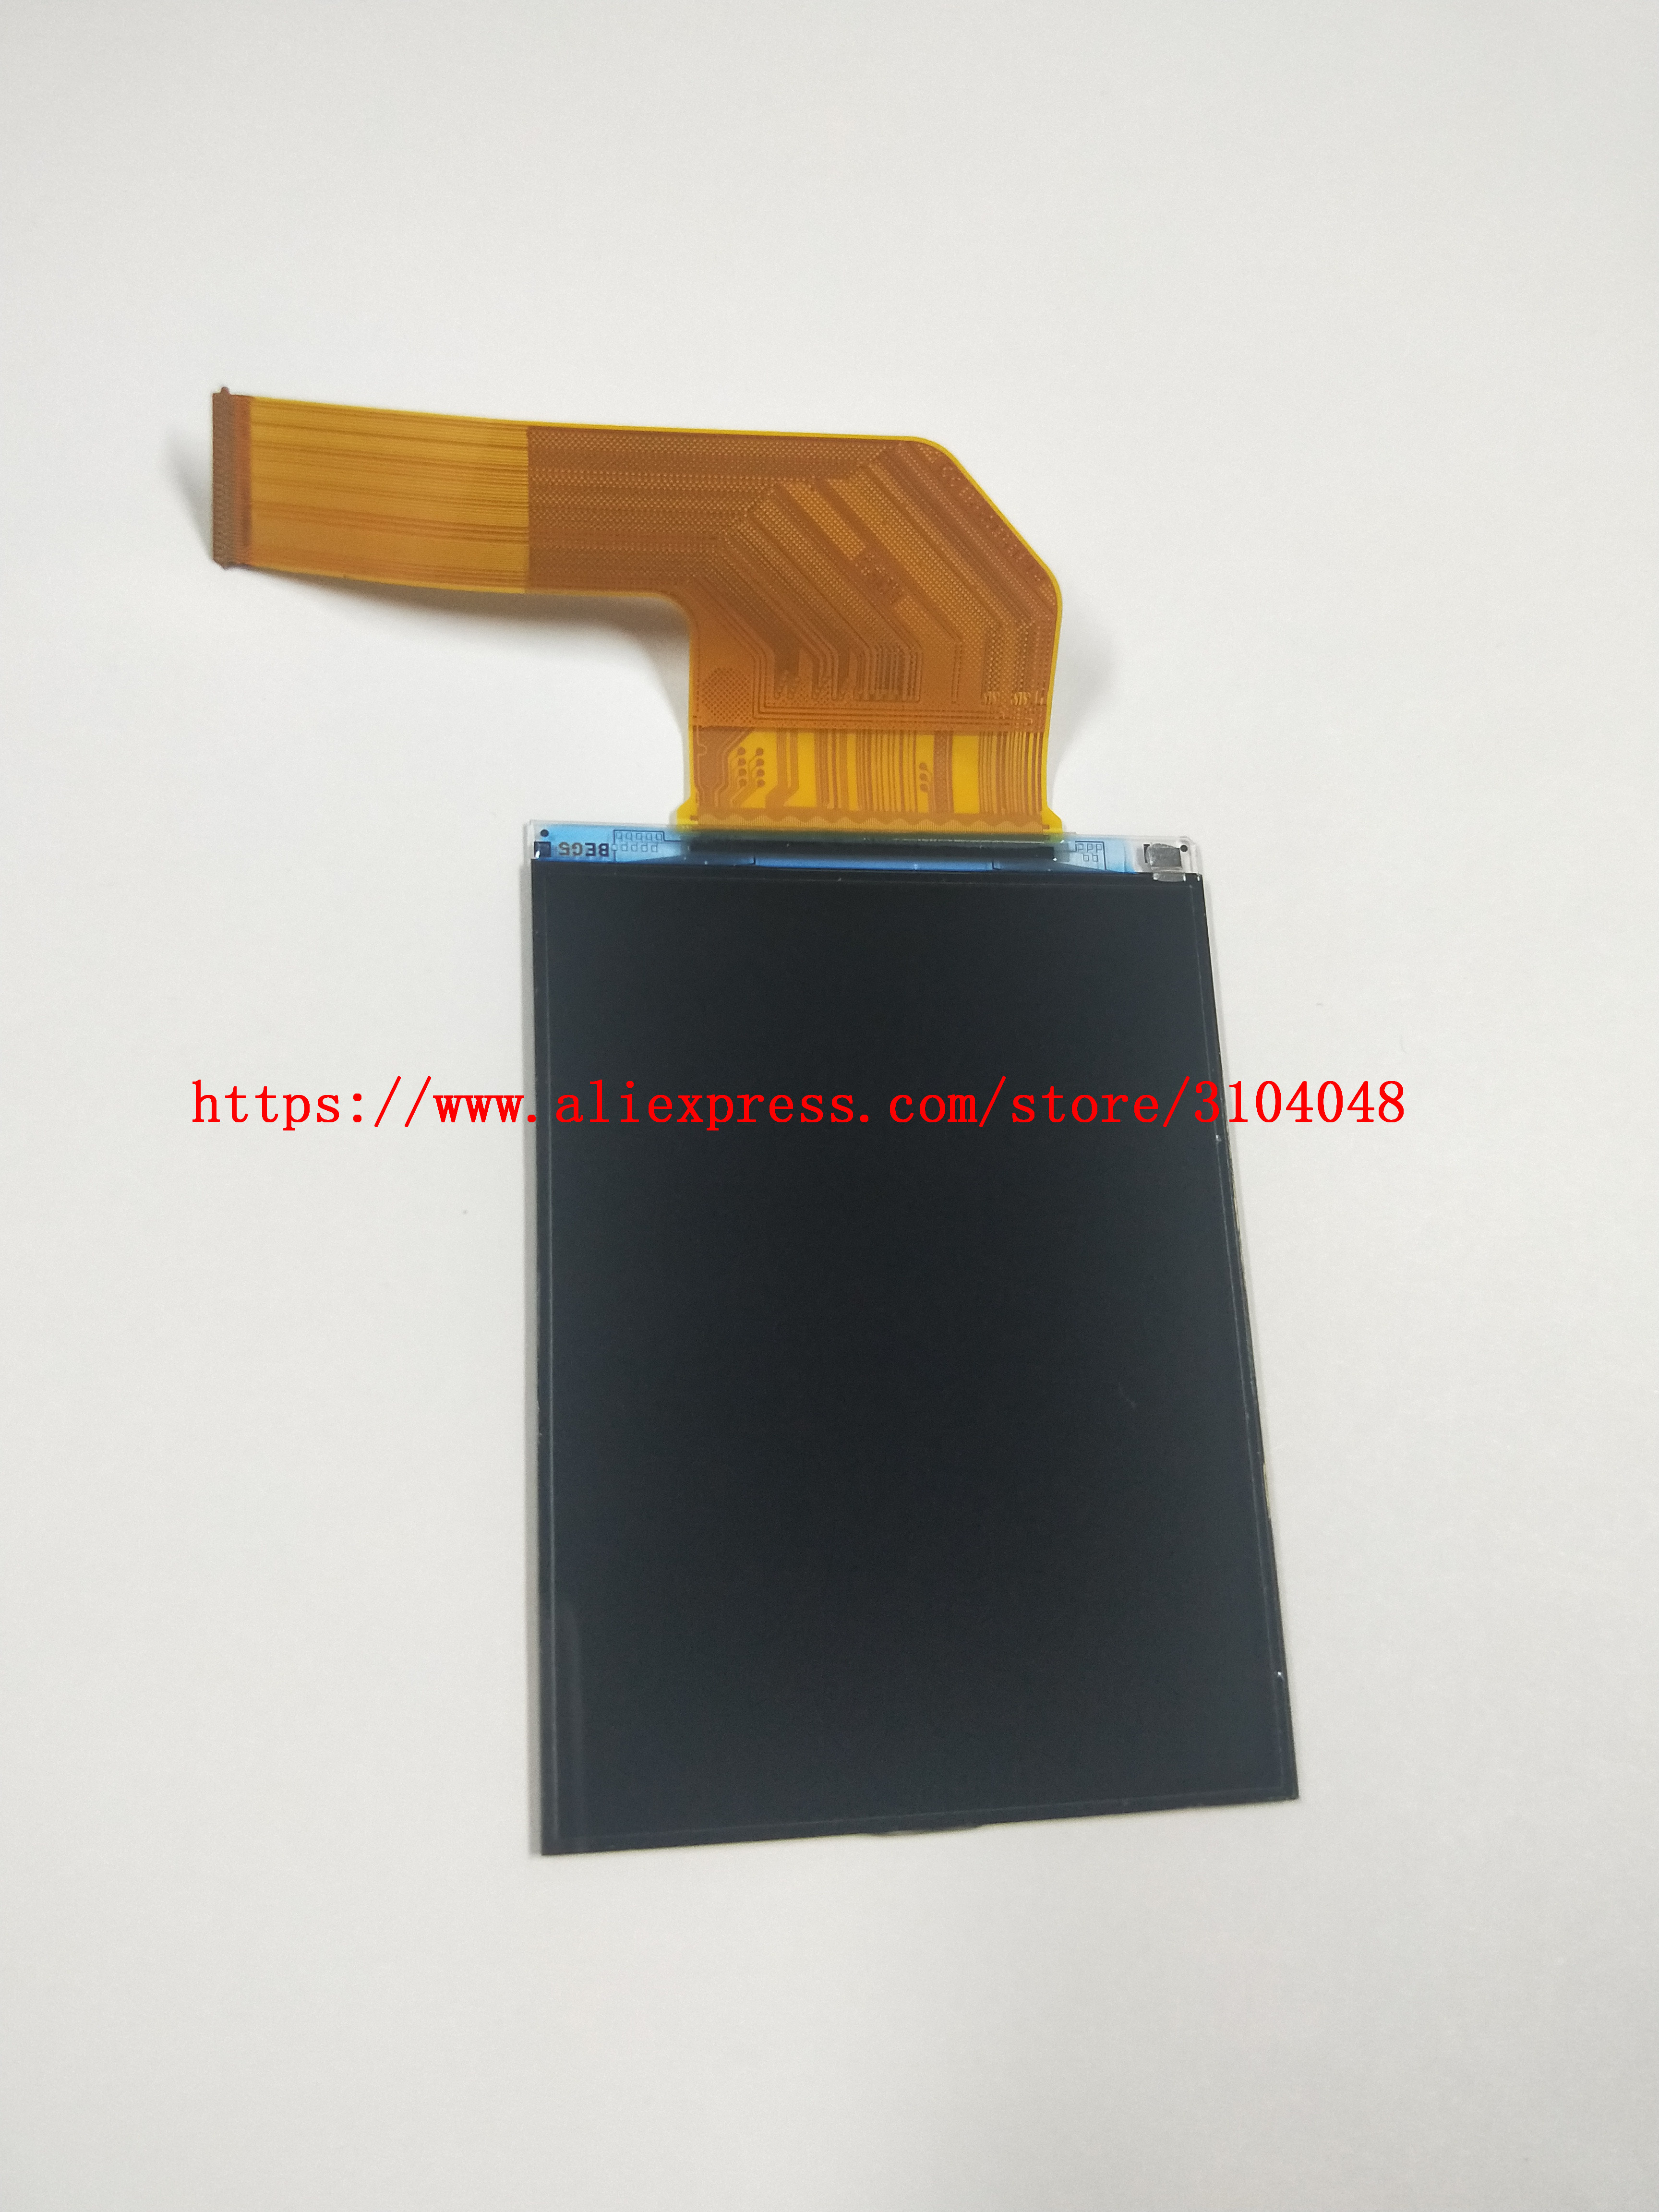 New Outer LCD Display Screen NO Backlight For Canon Powershot SX700 HS ; SX710 HS ; PC2047 ; PC2194 Digital Camera